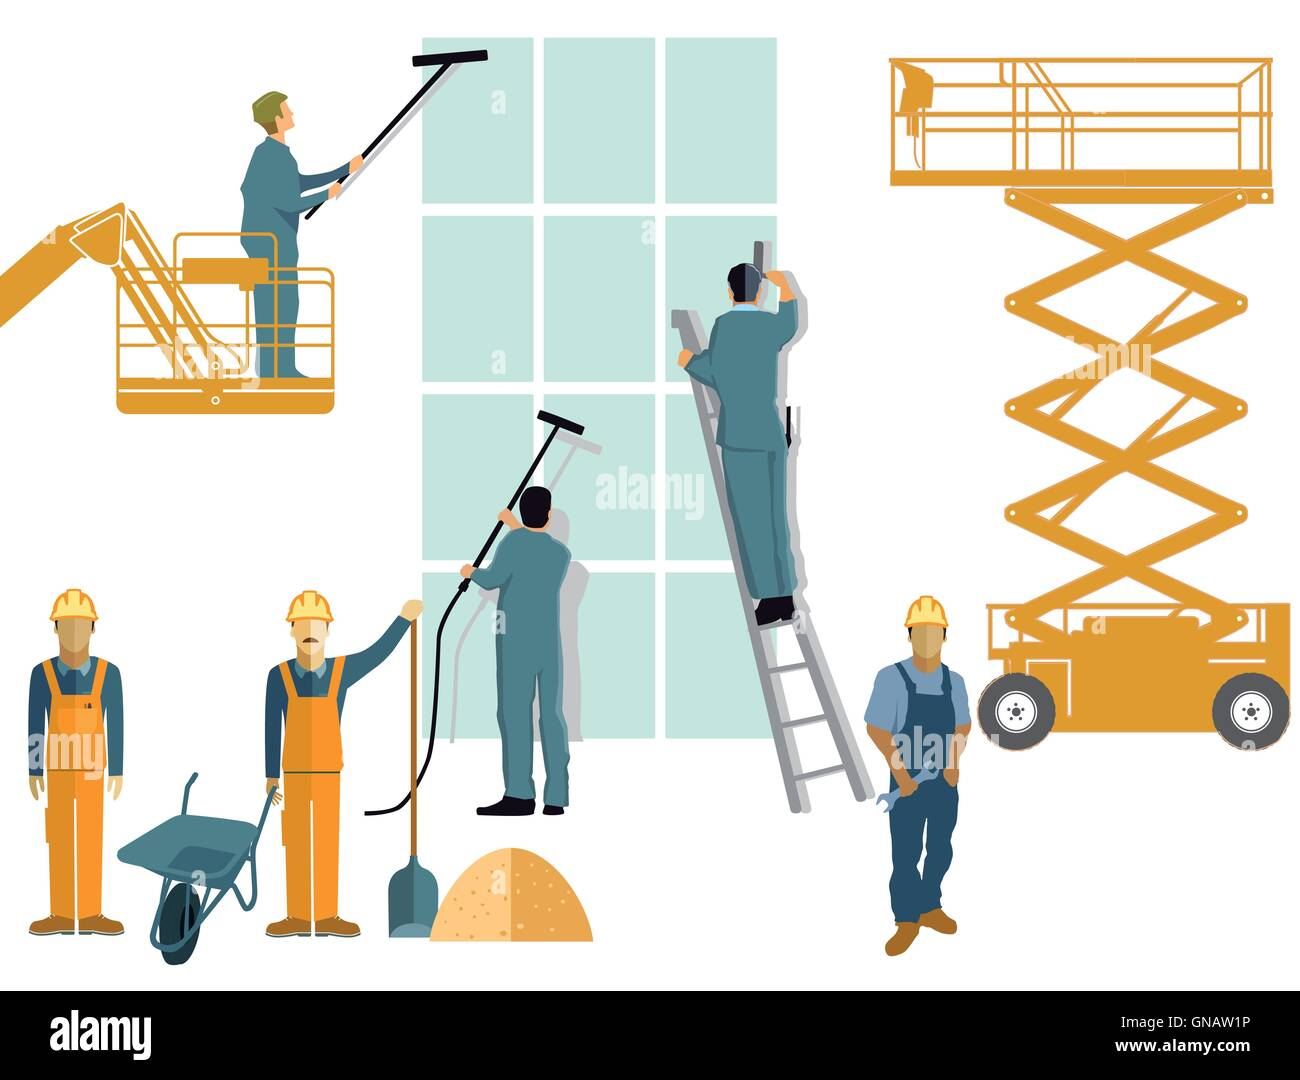 Construction and building cleaning - Stock Vector